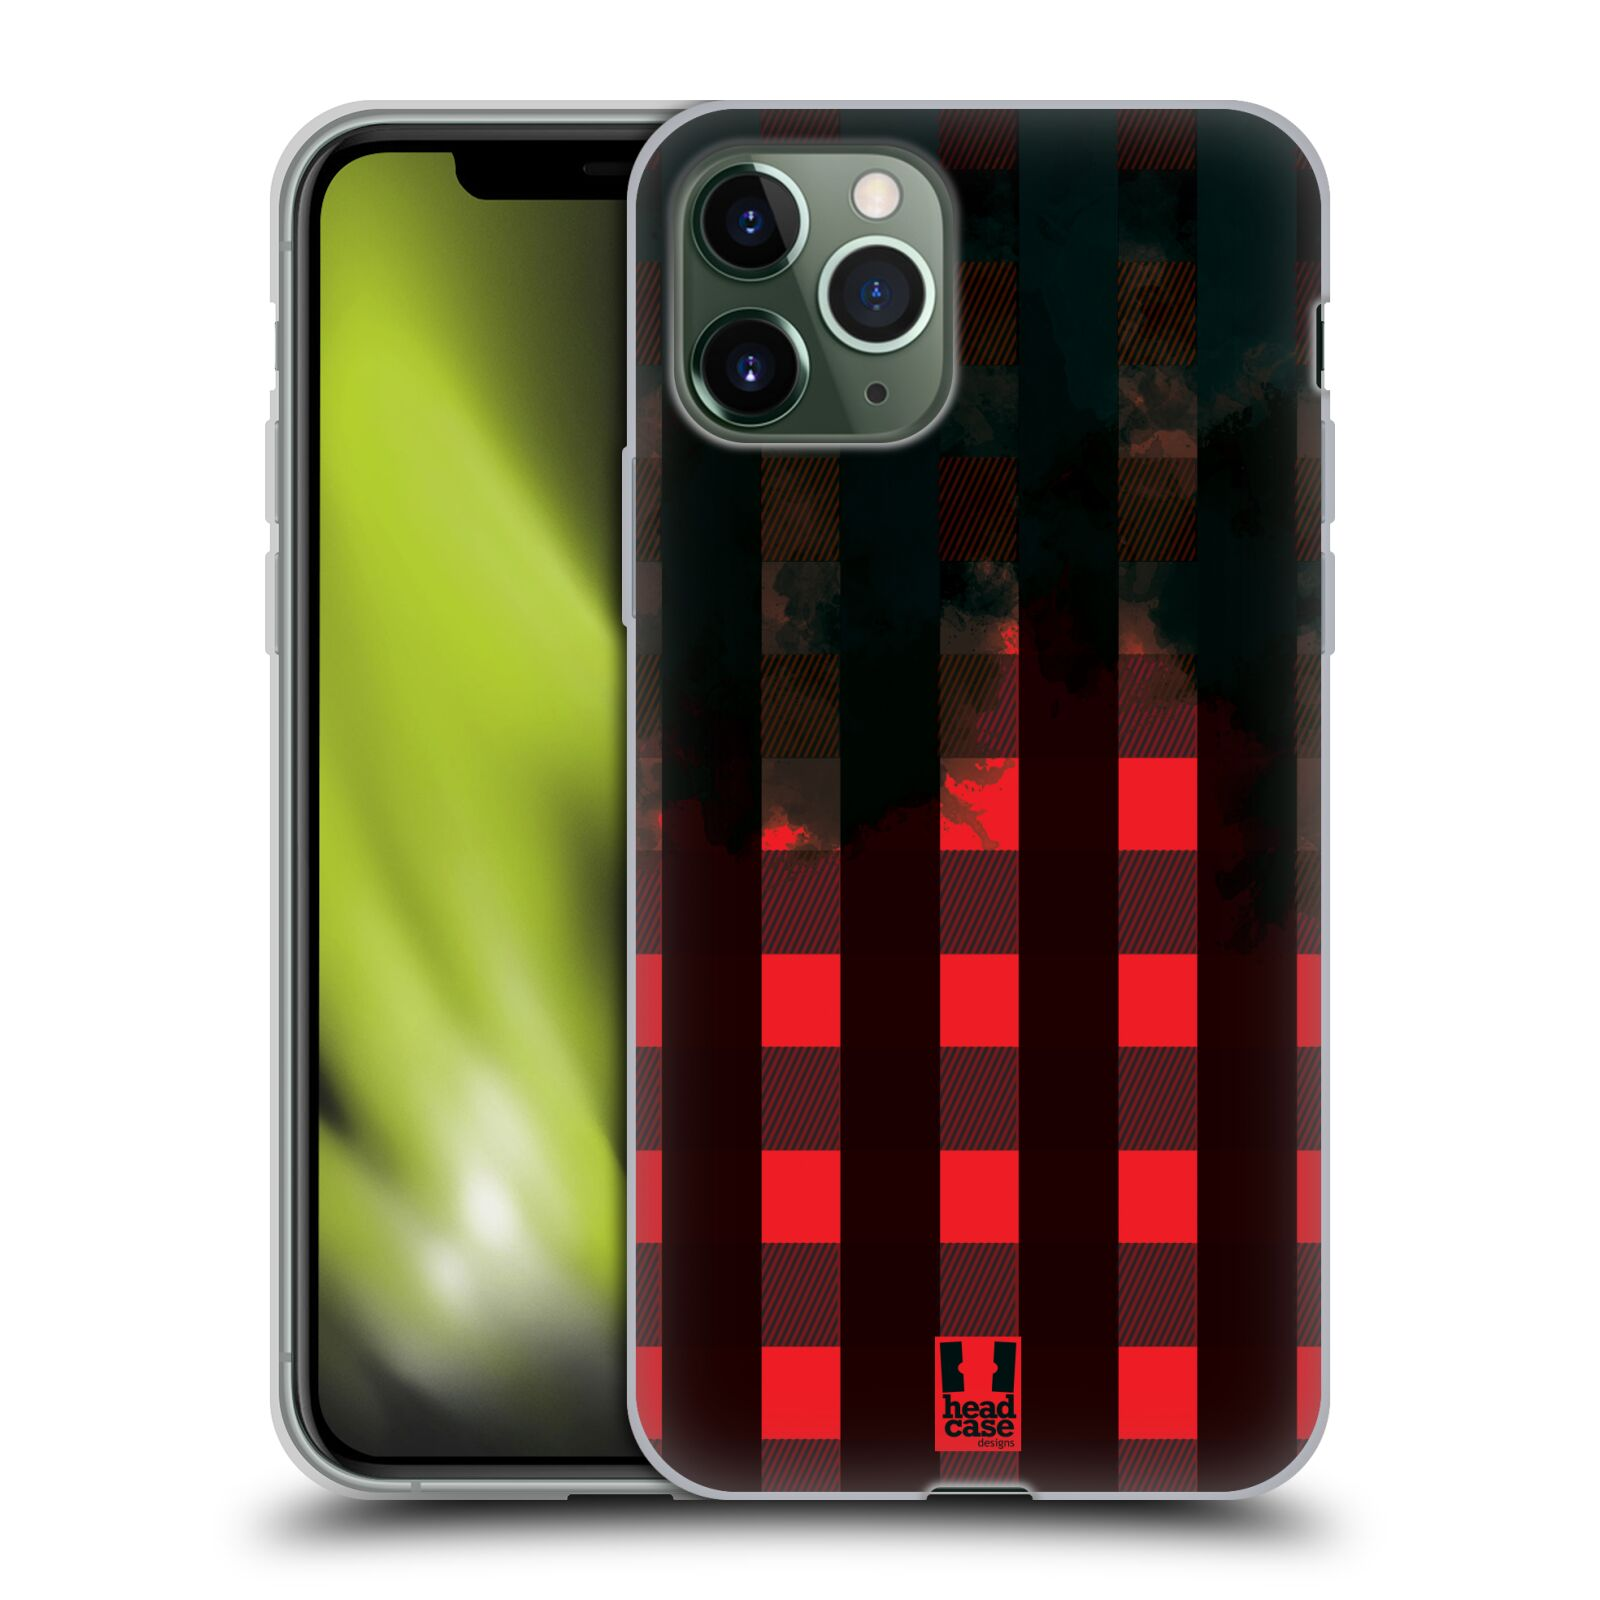 kryt na iphone xr | Silikonové pouzdro na mobil Apple iPhone 11 Pro - Head Case - FLANEL RED BLACK